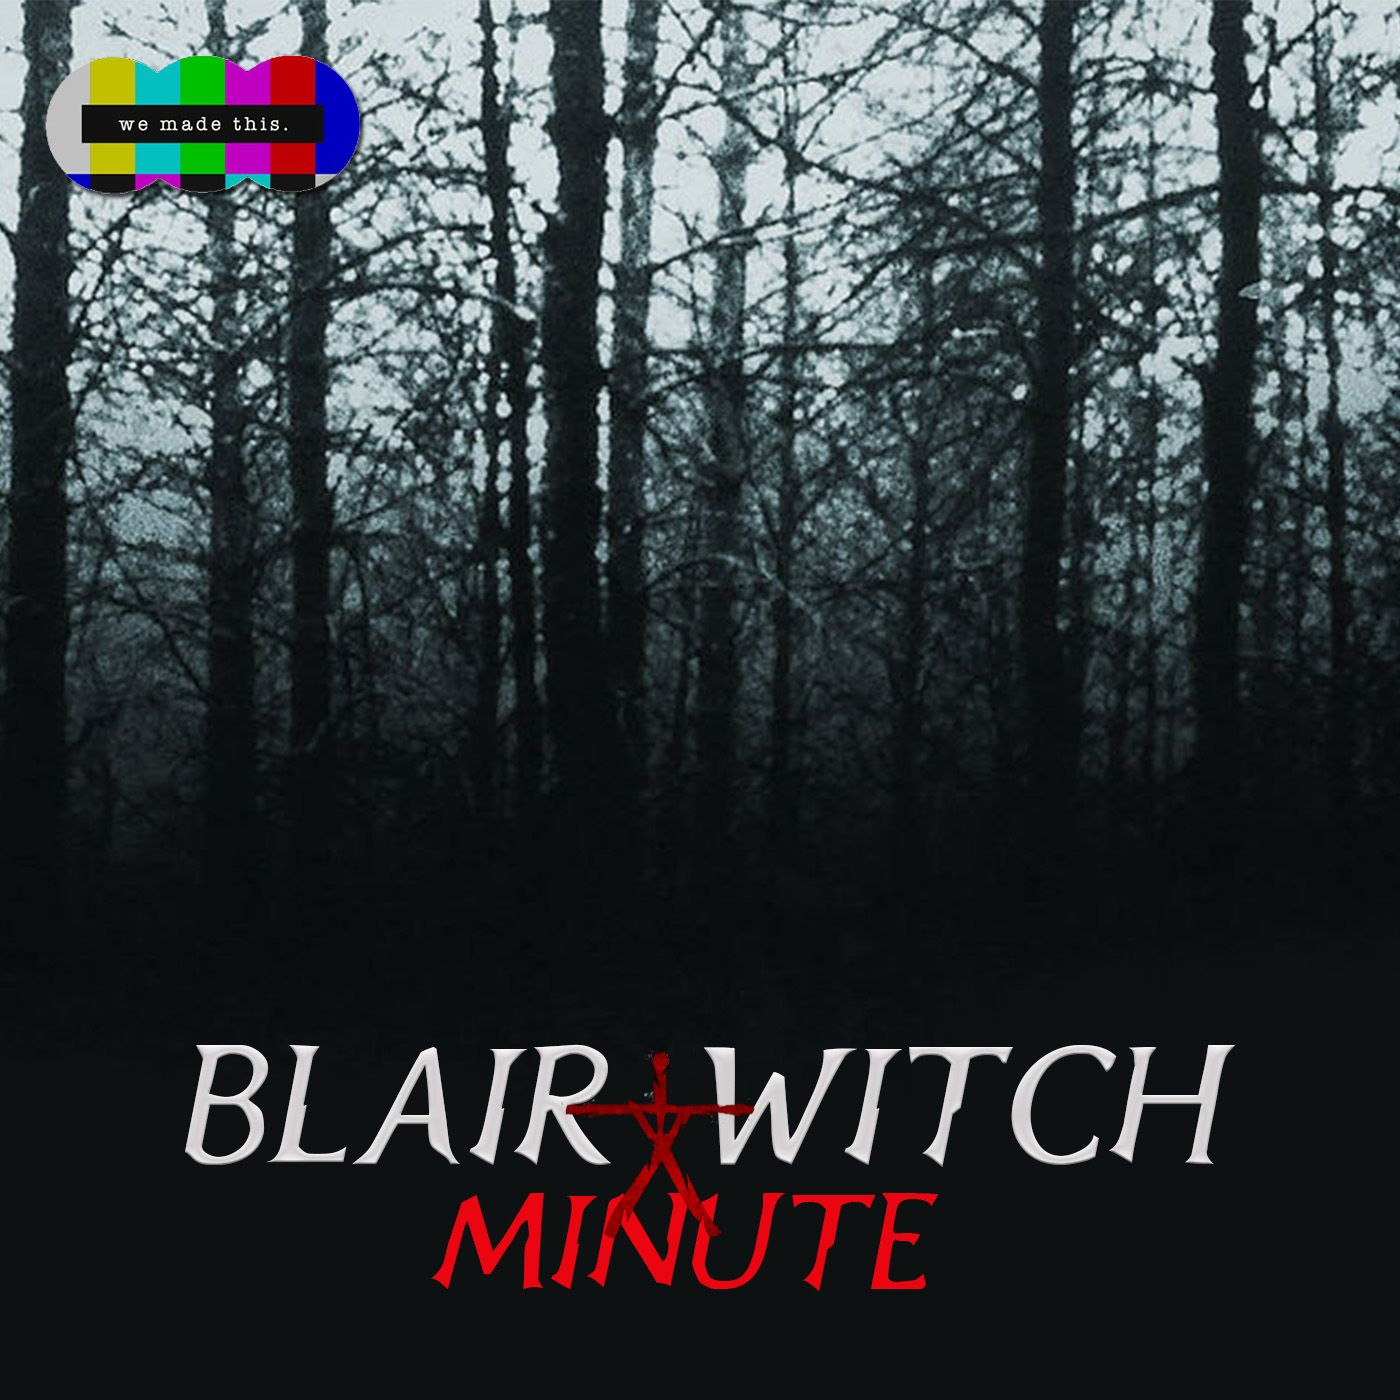 4. The Blair Witch Project Minute 4: The Ceremonial 1st Slate